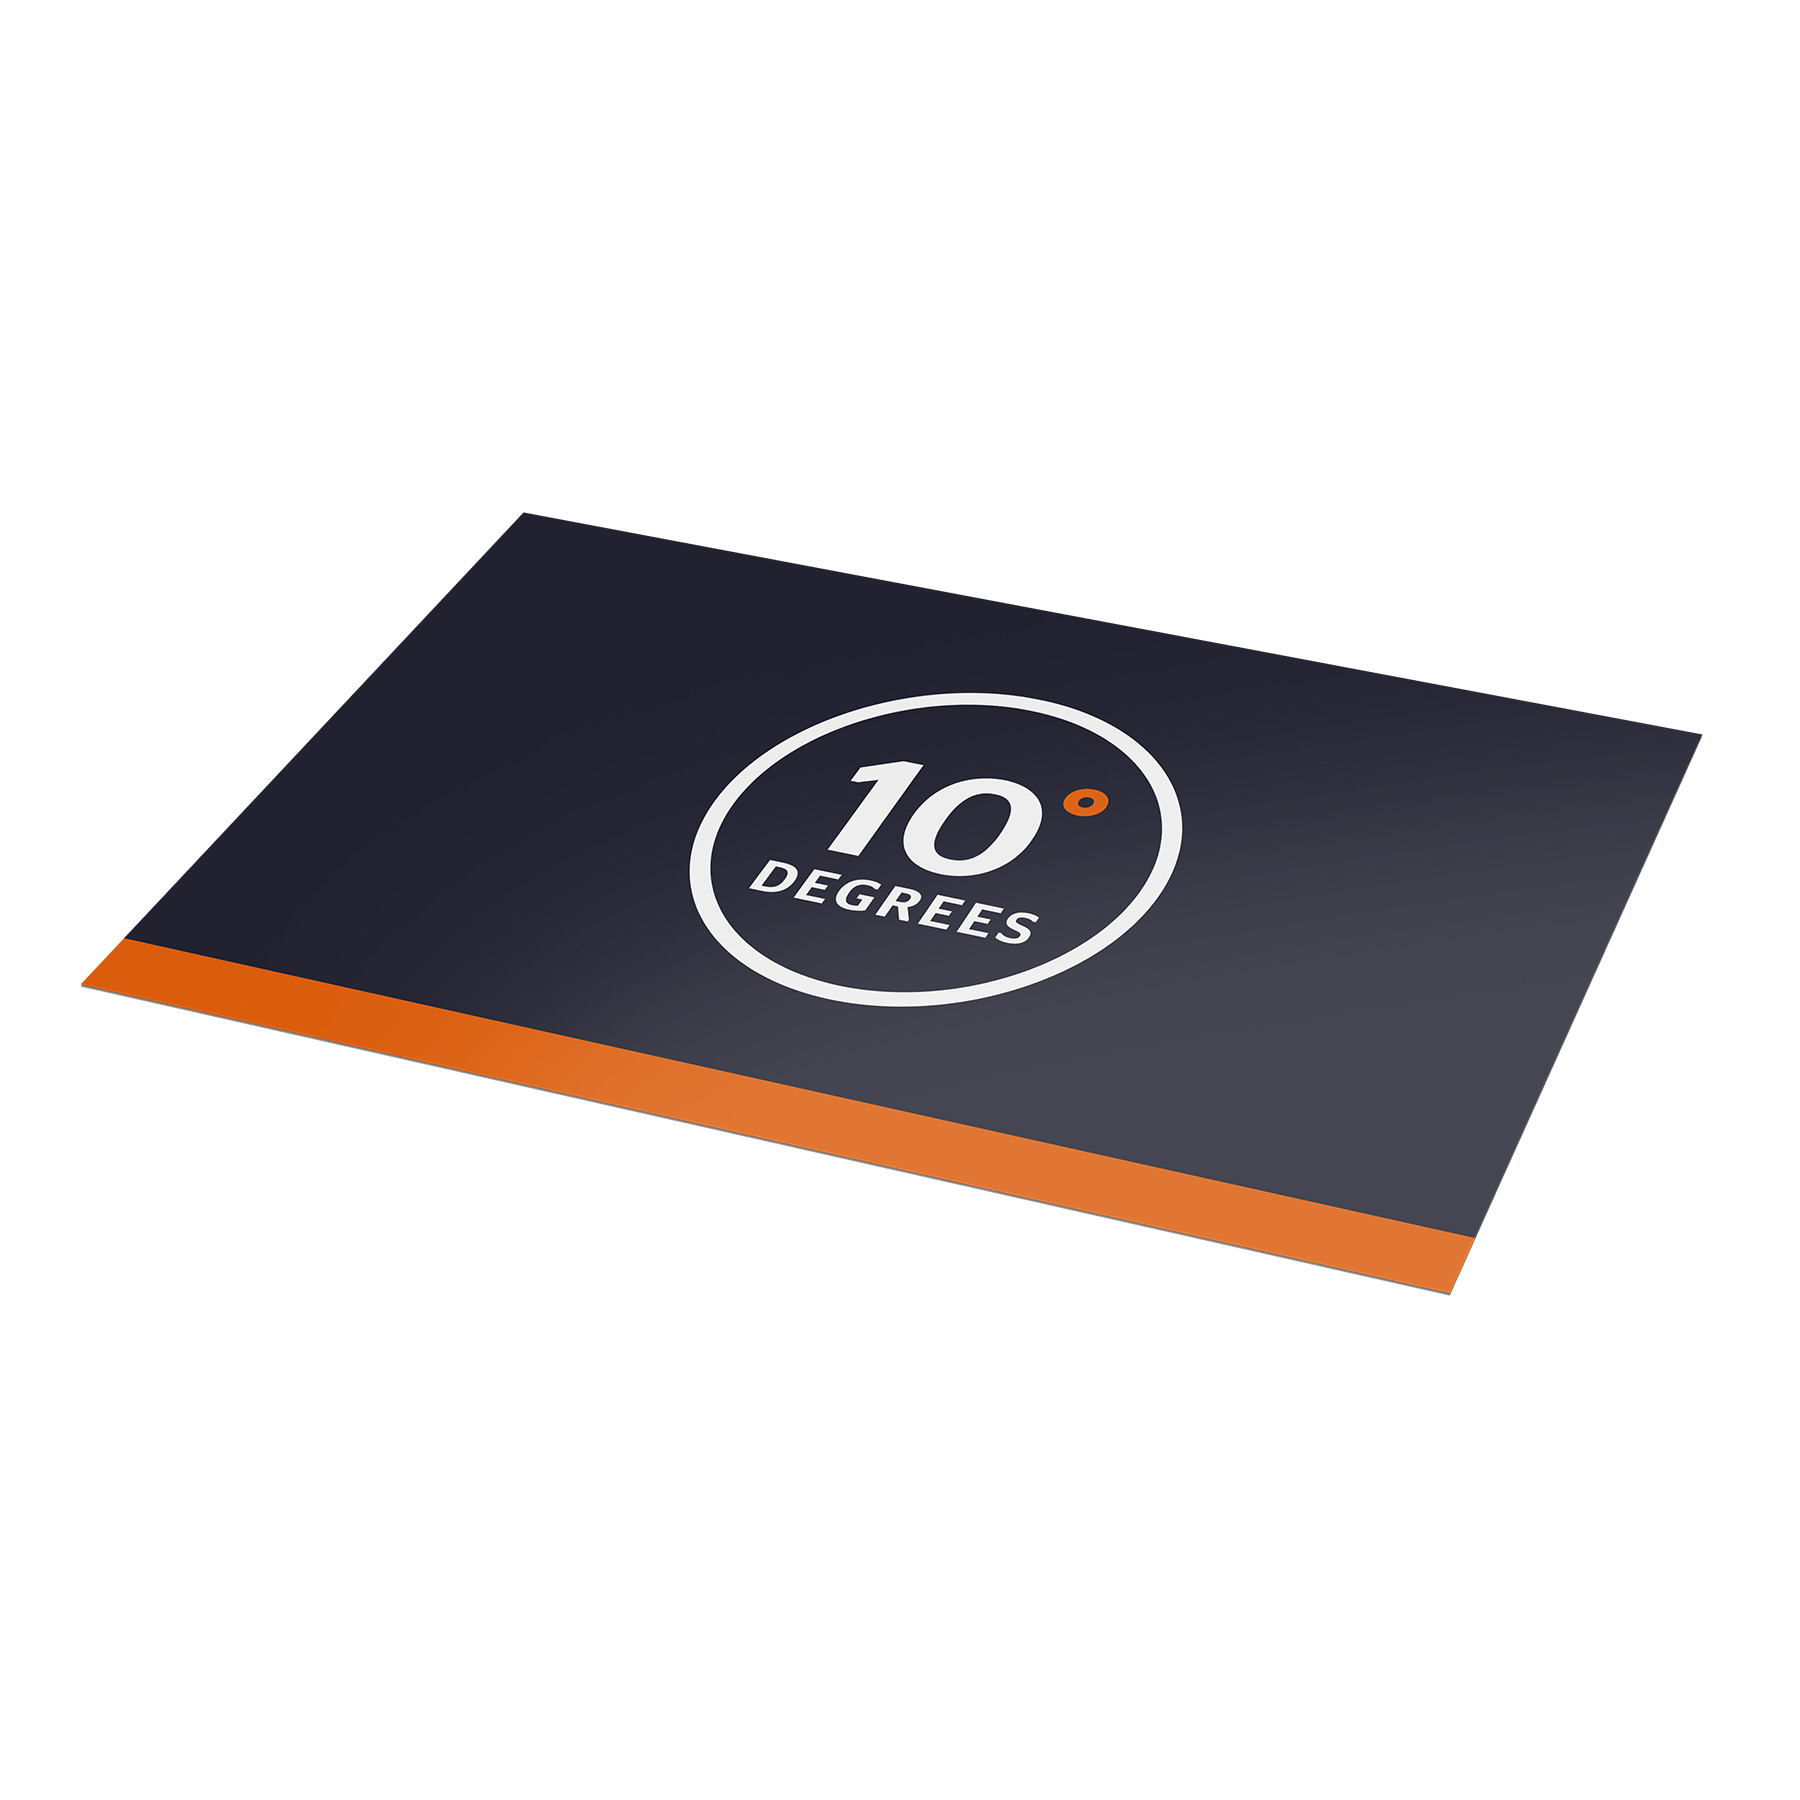 Stickers groot formaat 10 Degrees